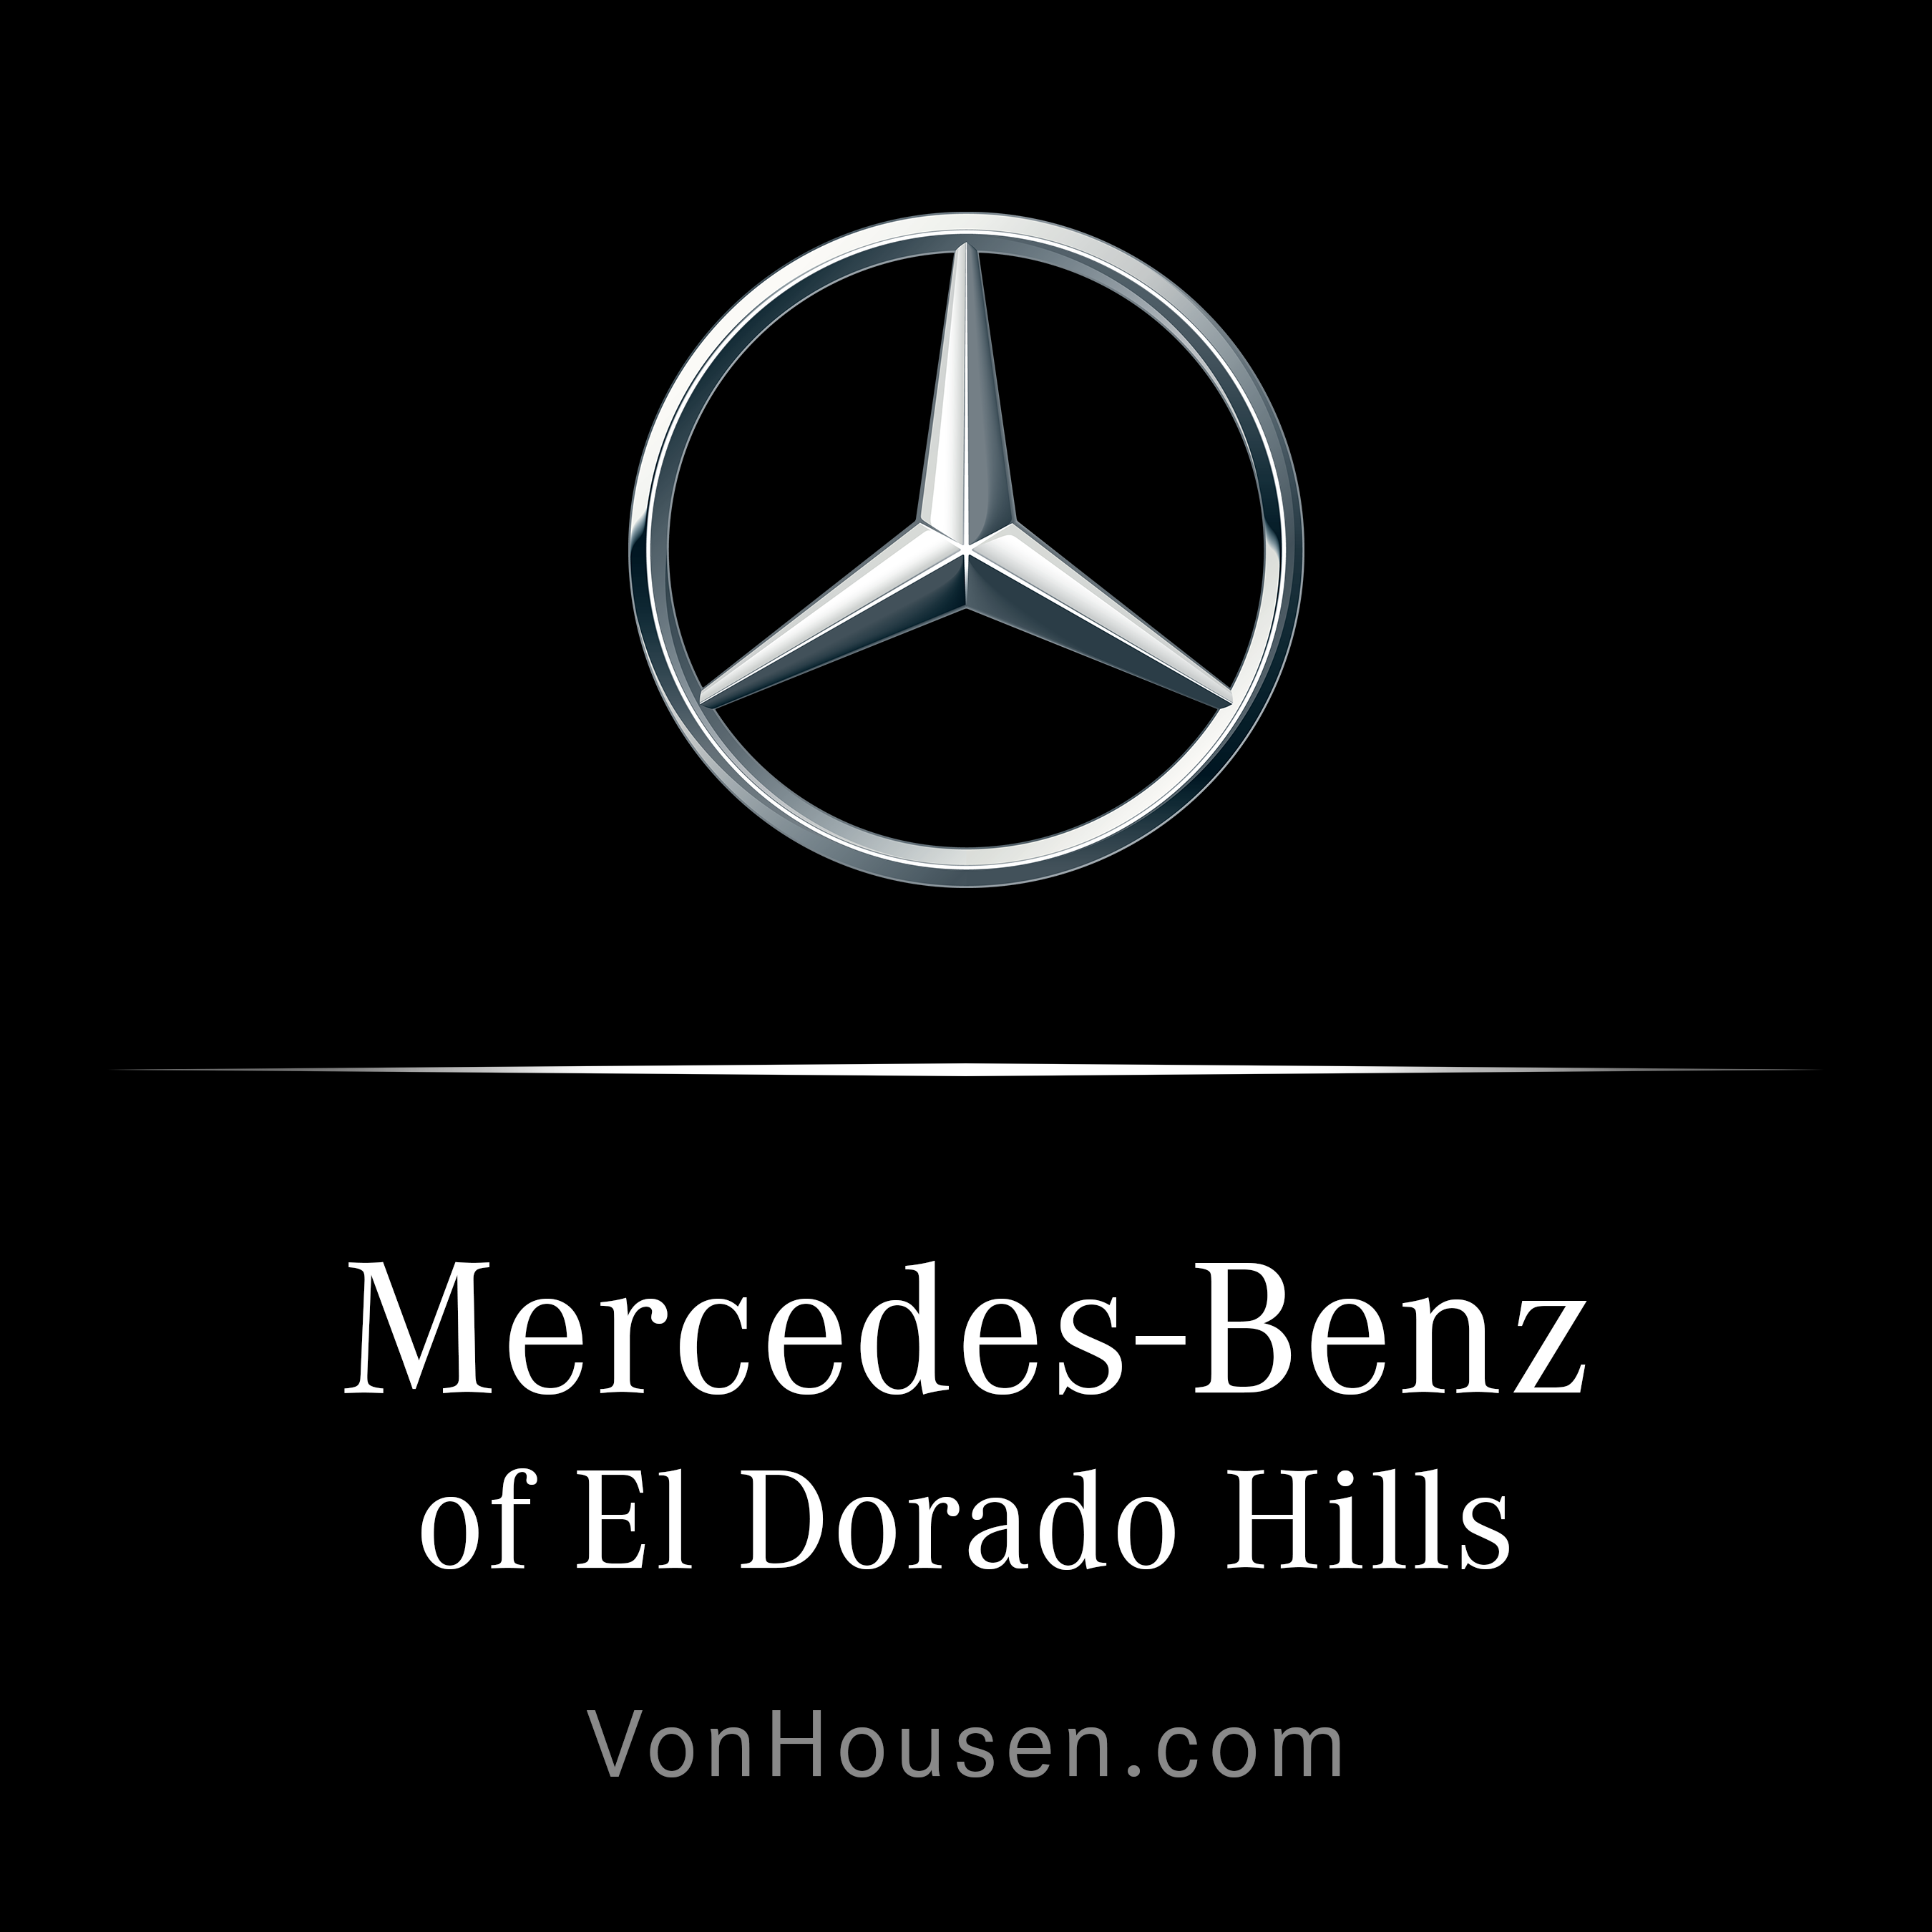 Mercedes-Benz of El Dorado Hills